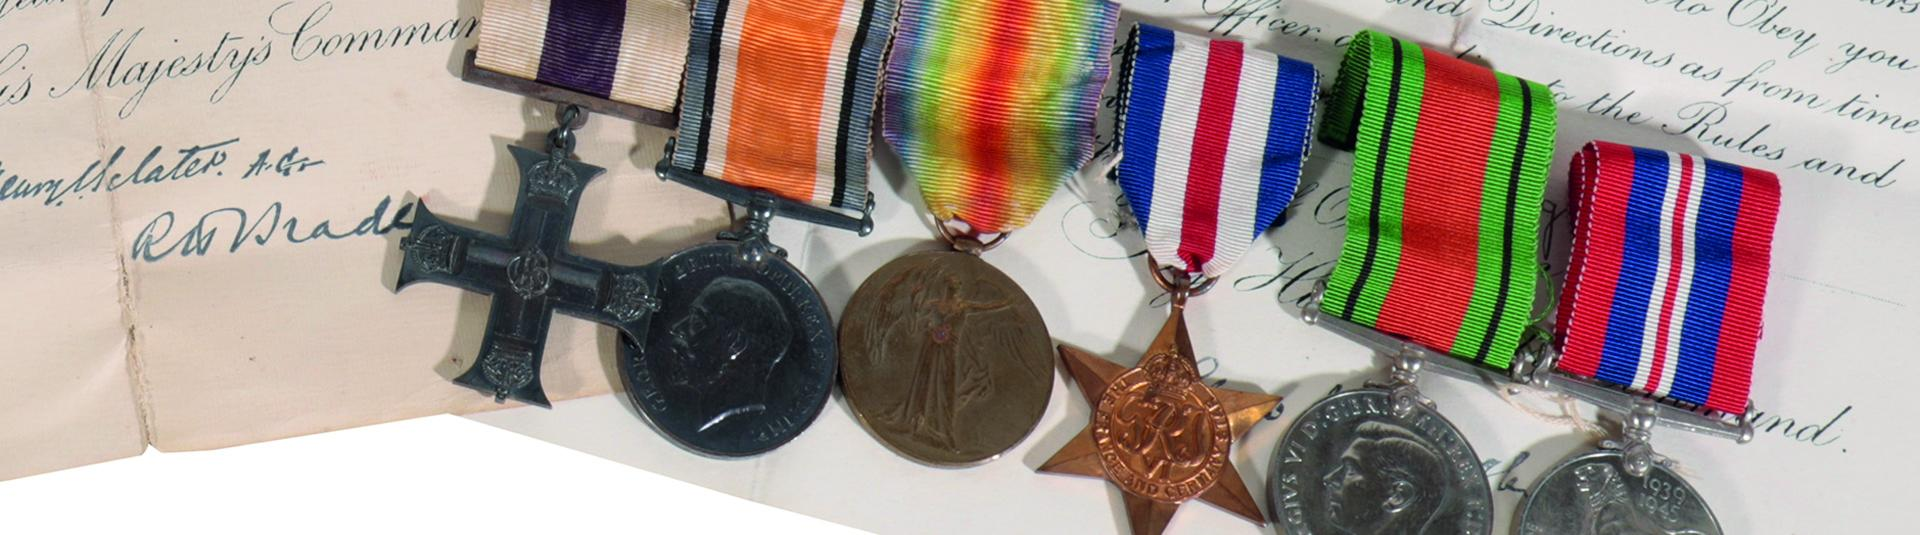 Coins and medals collection on black 2020